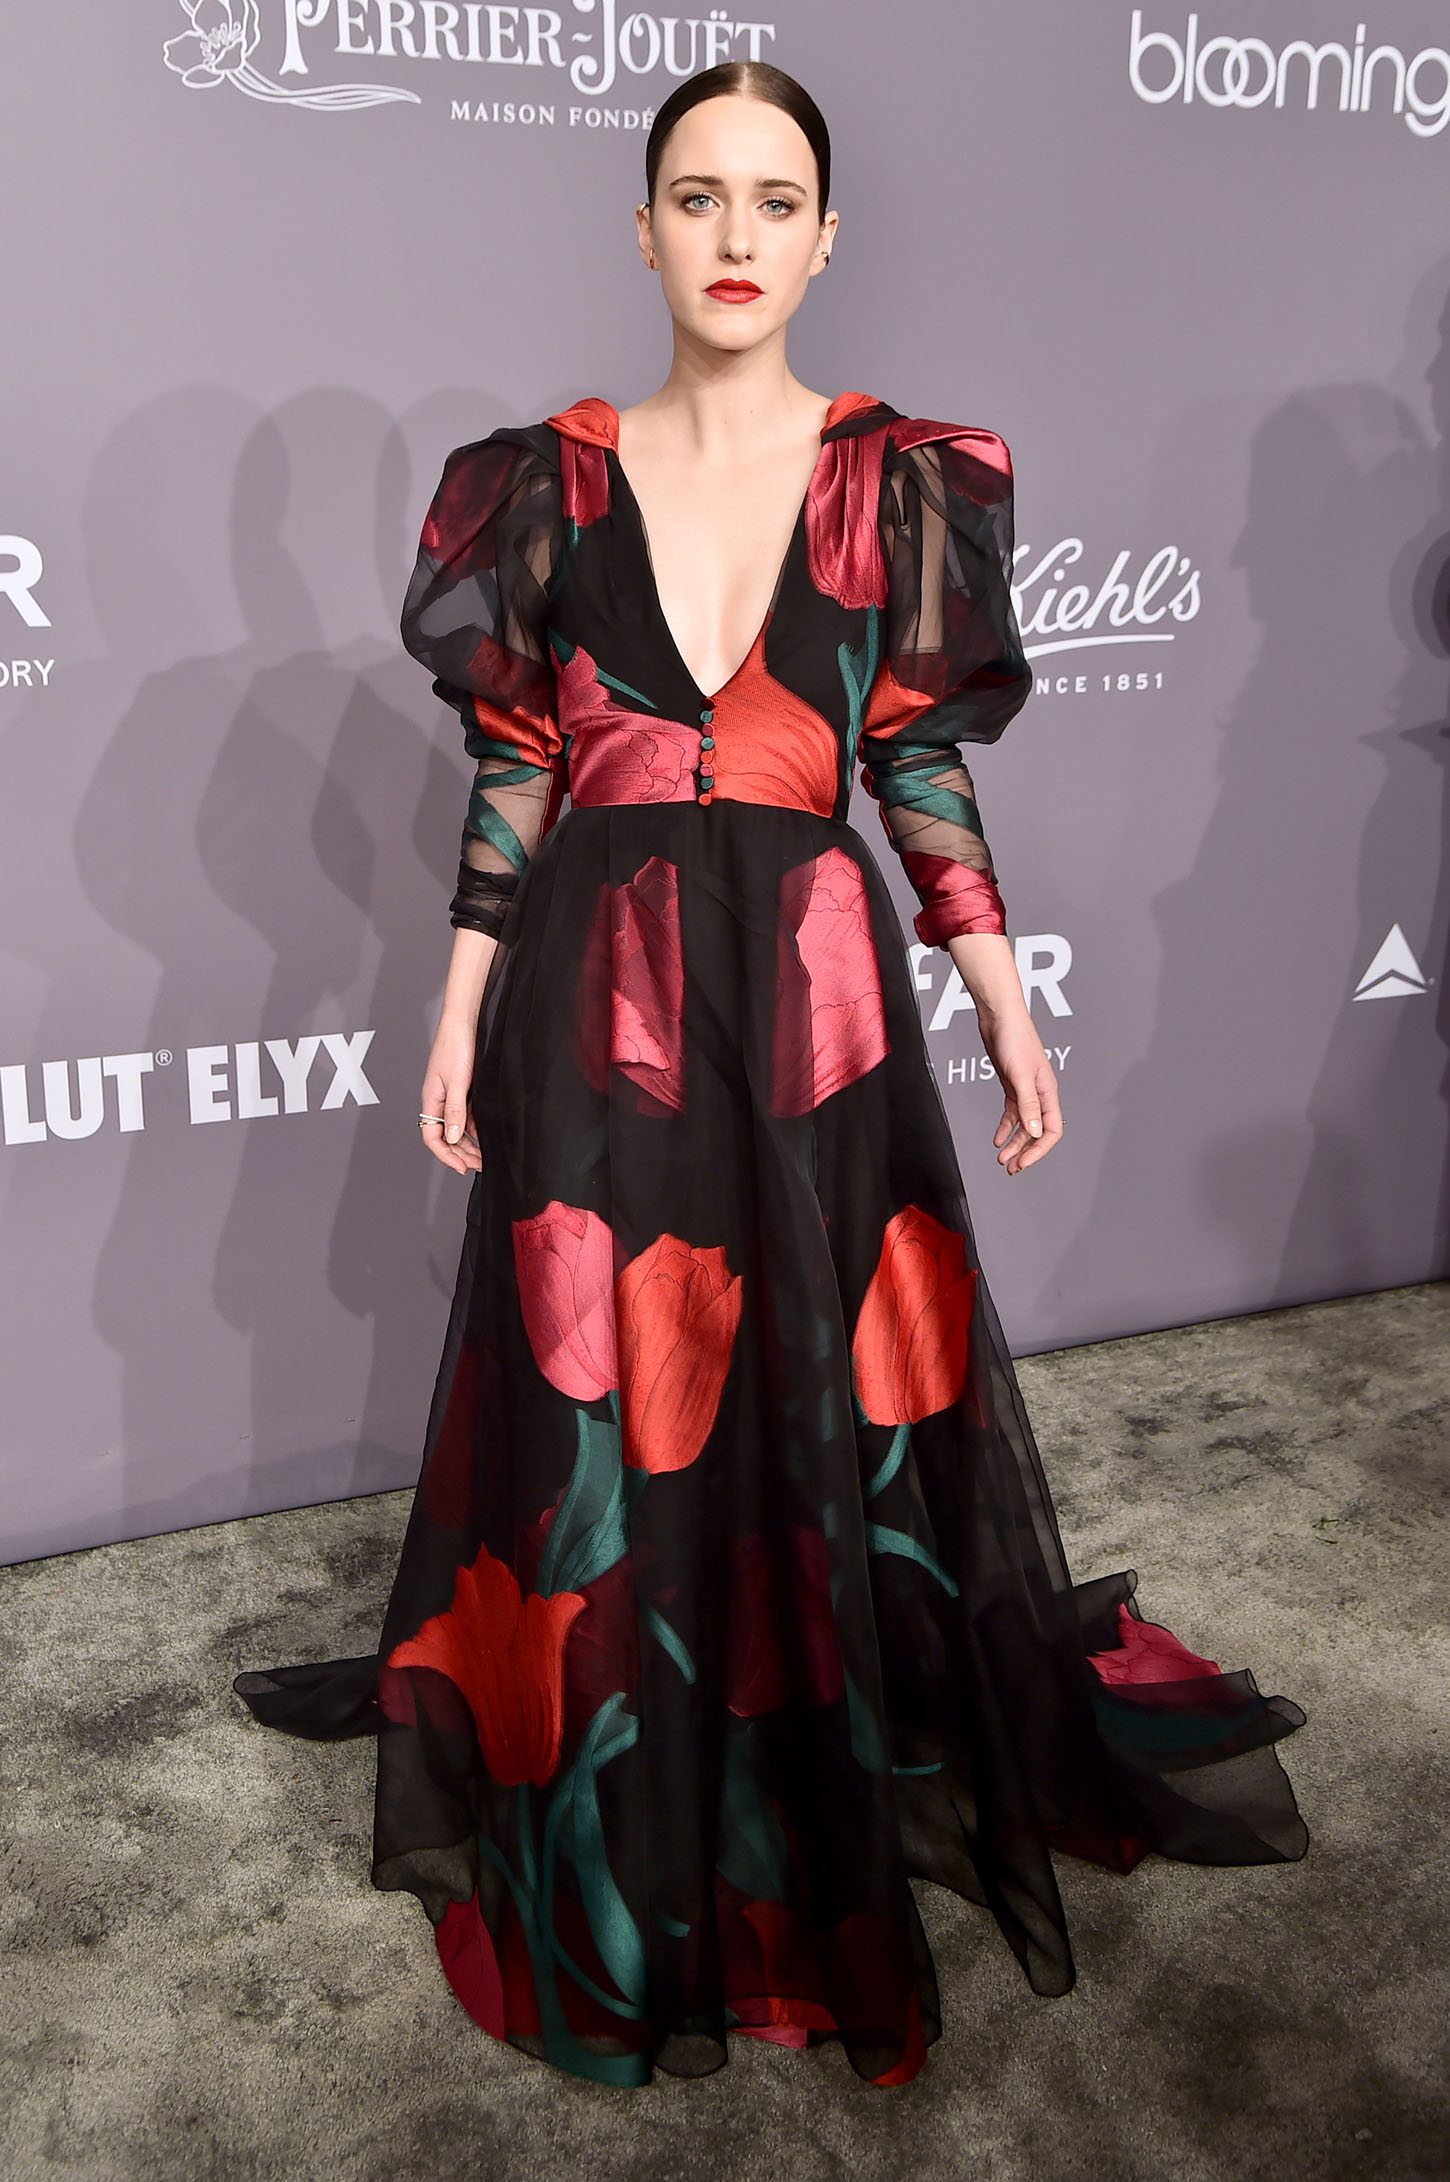 NEW YORK, NY - FEBRUARY 07:  Actor Rachel Brosnahan attends the 2018 amfAR Gala New York at Cipriani Wall Street on February 7, 2018 in New York City.  (Photo by Theo Wargo/Getty Images)